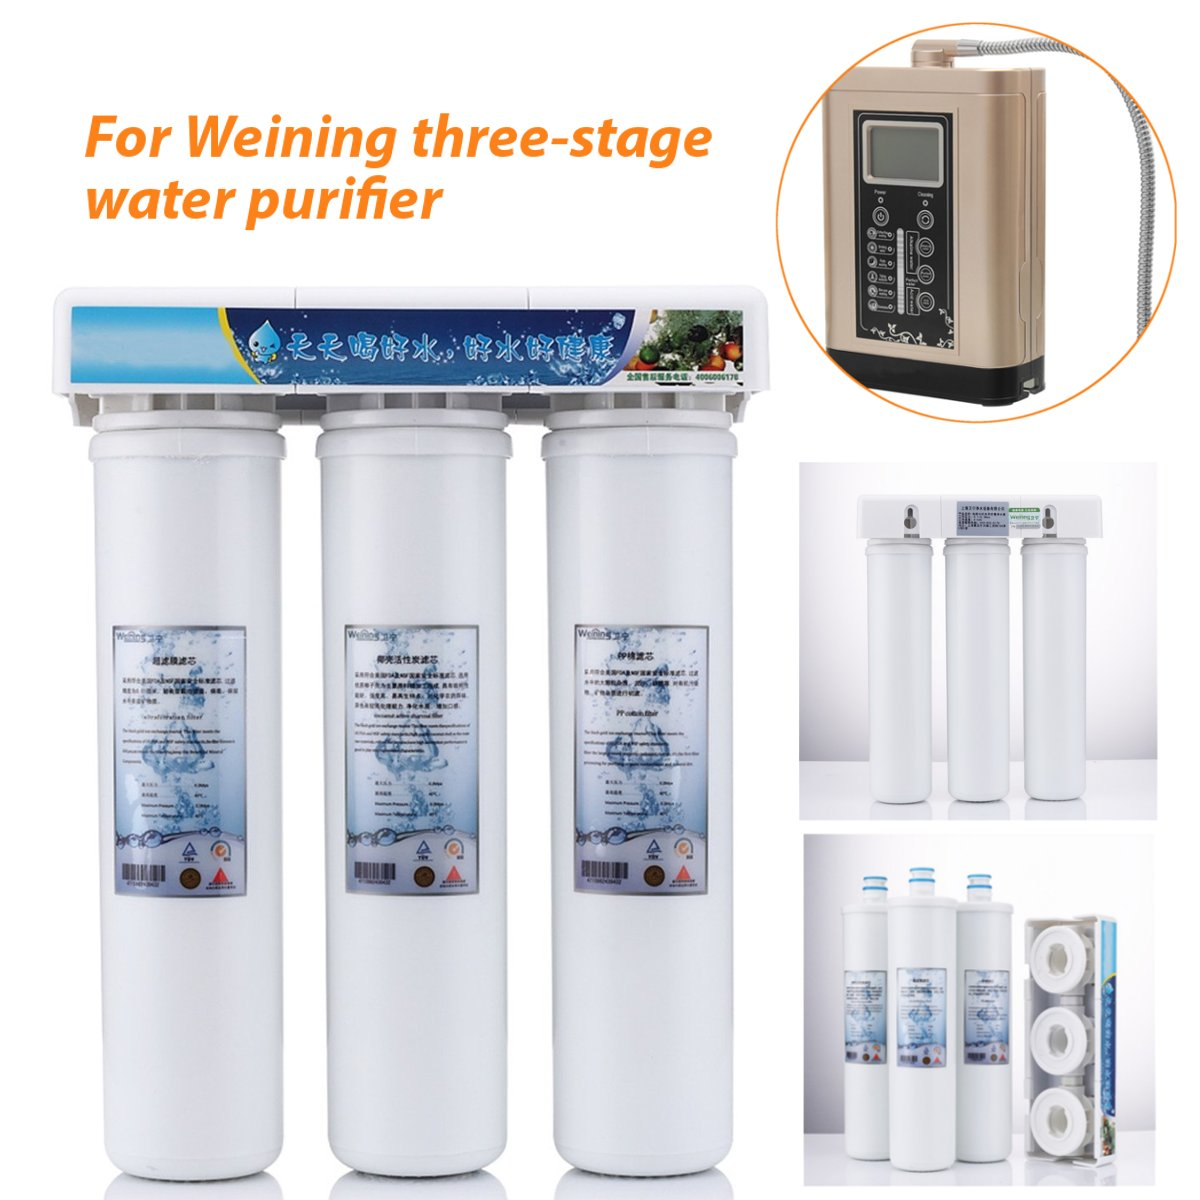 Purifier Water Filter Electrolytic Water Machine For 110-240V Steel LF700 Water Ionizer PurifierAlkaline Acid PH Adjust MachinePurifier Water Filter Electrolytic Water Machine For 110-240V Steel LF700 Water Ionizer PurifierAlkaline Acid PH Adjust Machine